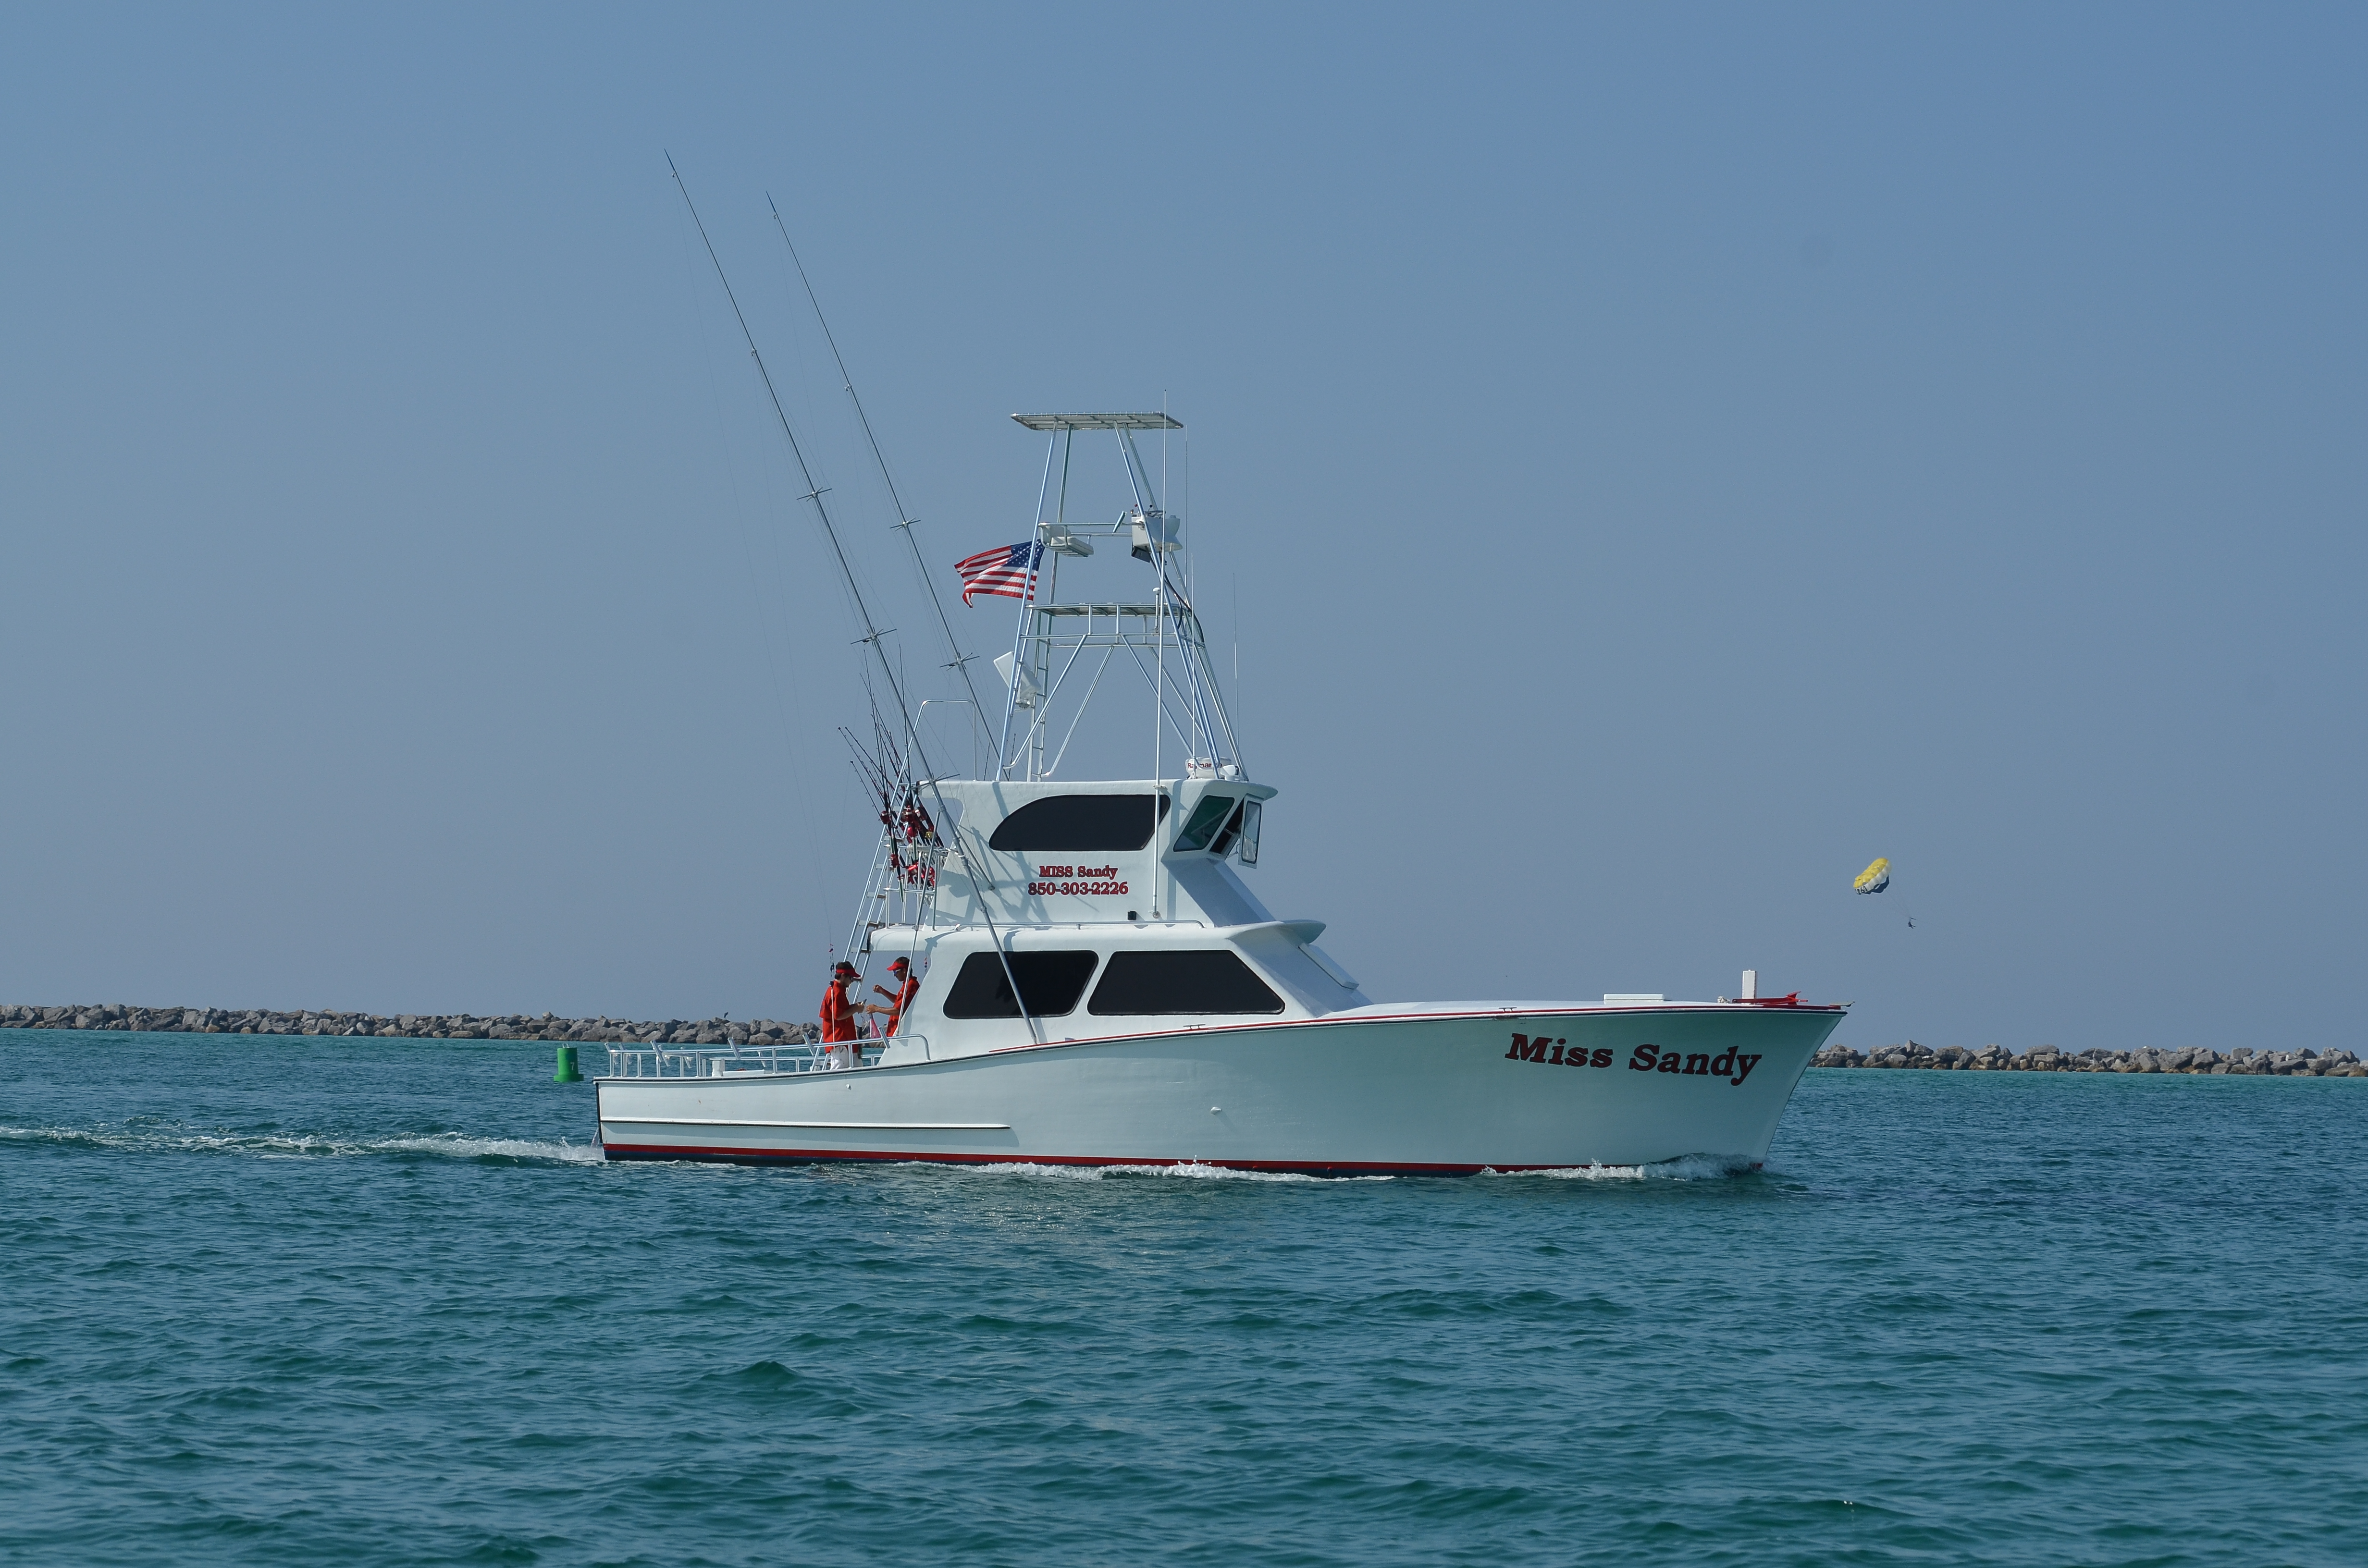 Destin fishing swoop fishing charters autos post for Swoop deep sea fishing